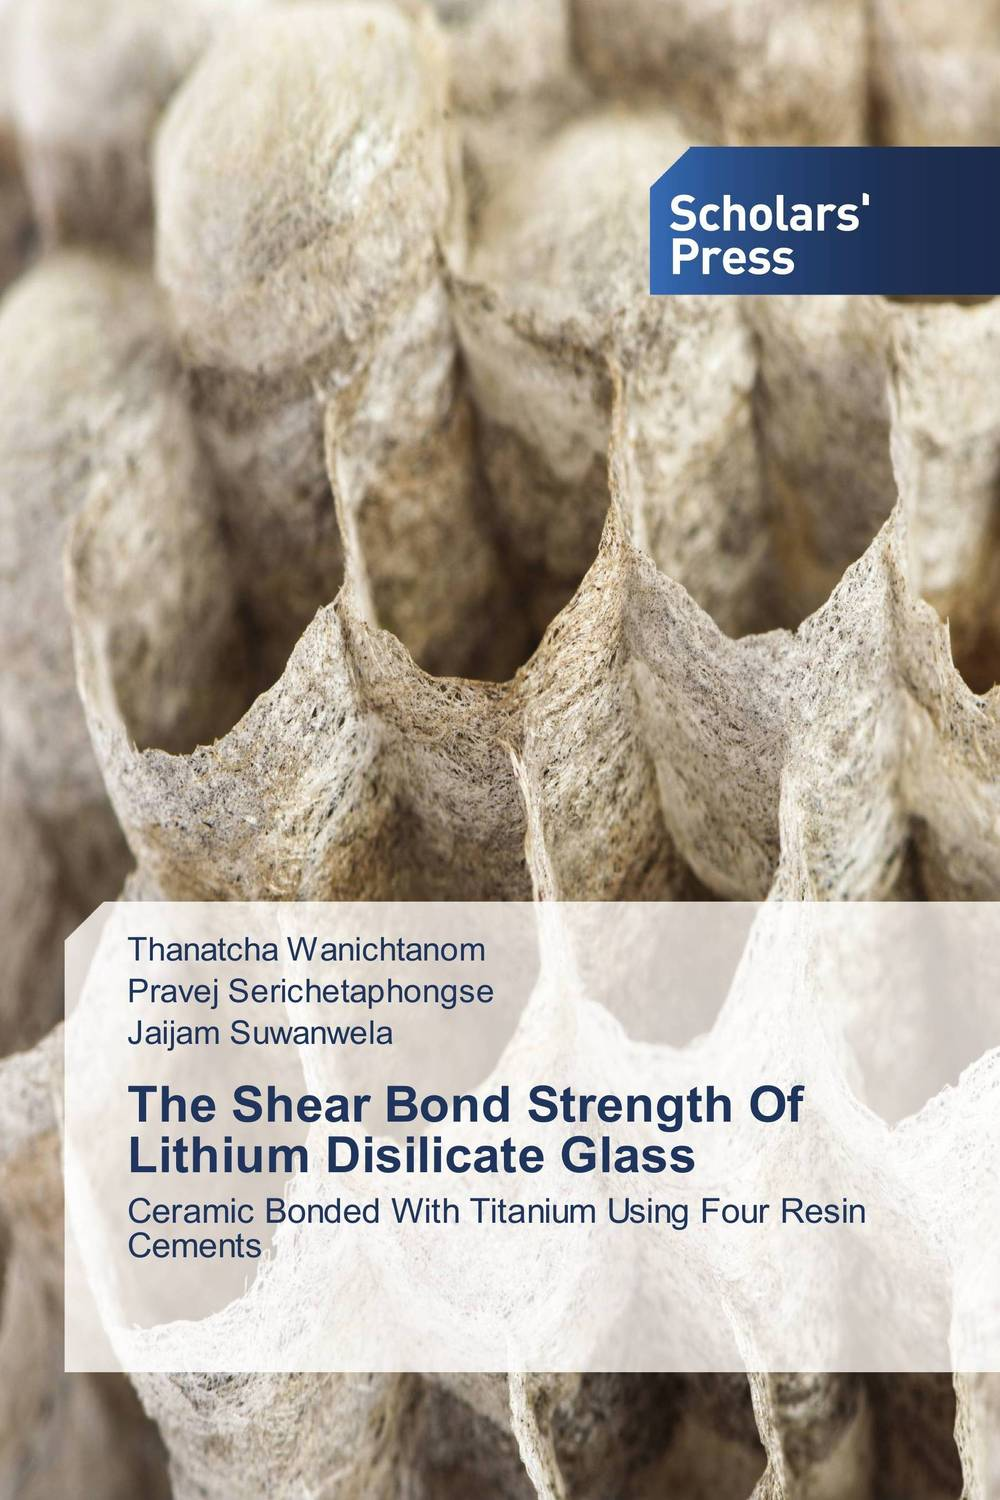 The Shear Bond Strength Of Lithium Disilicate Glass 53 16